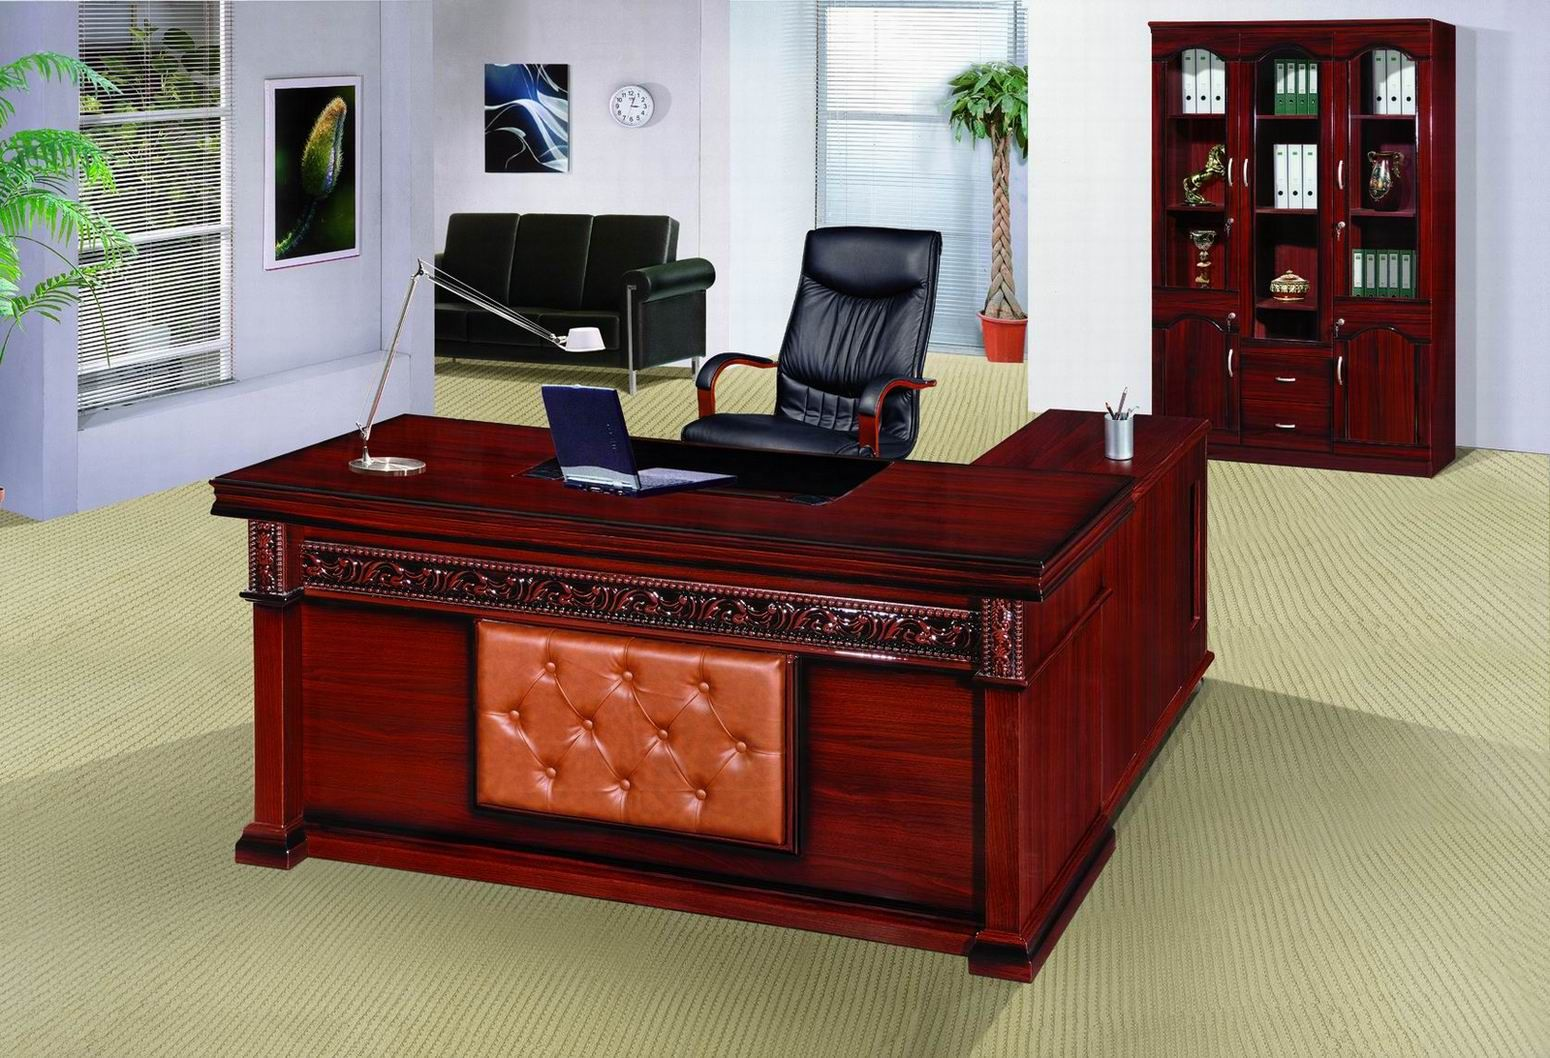 Royal Office Table Accessories With Modern Lamp And Netbook Also Elegant